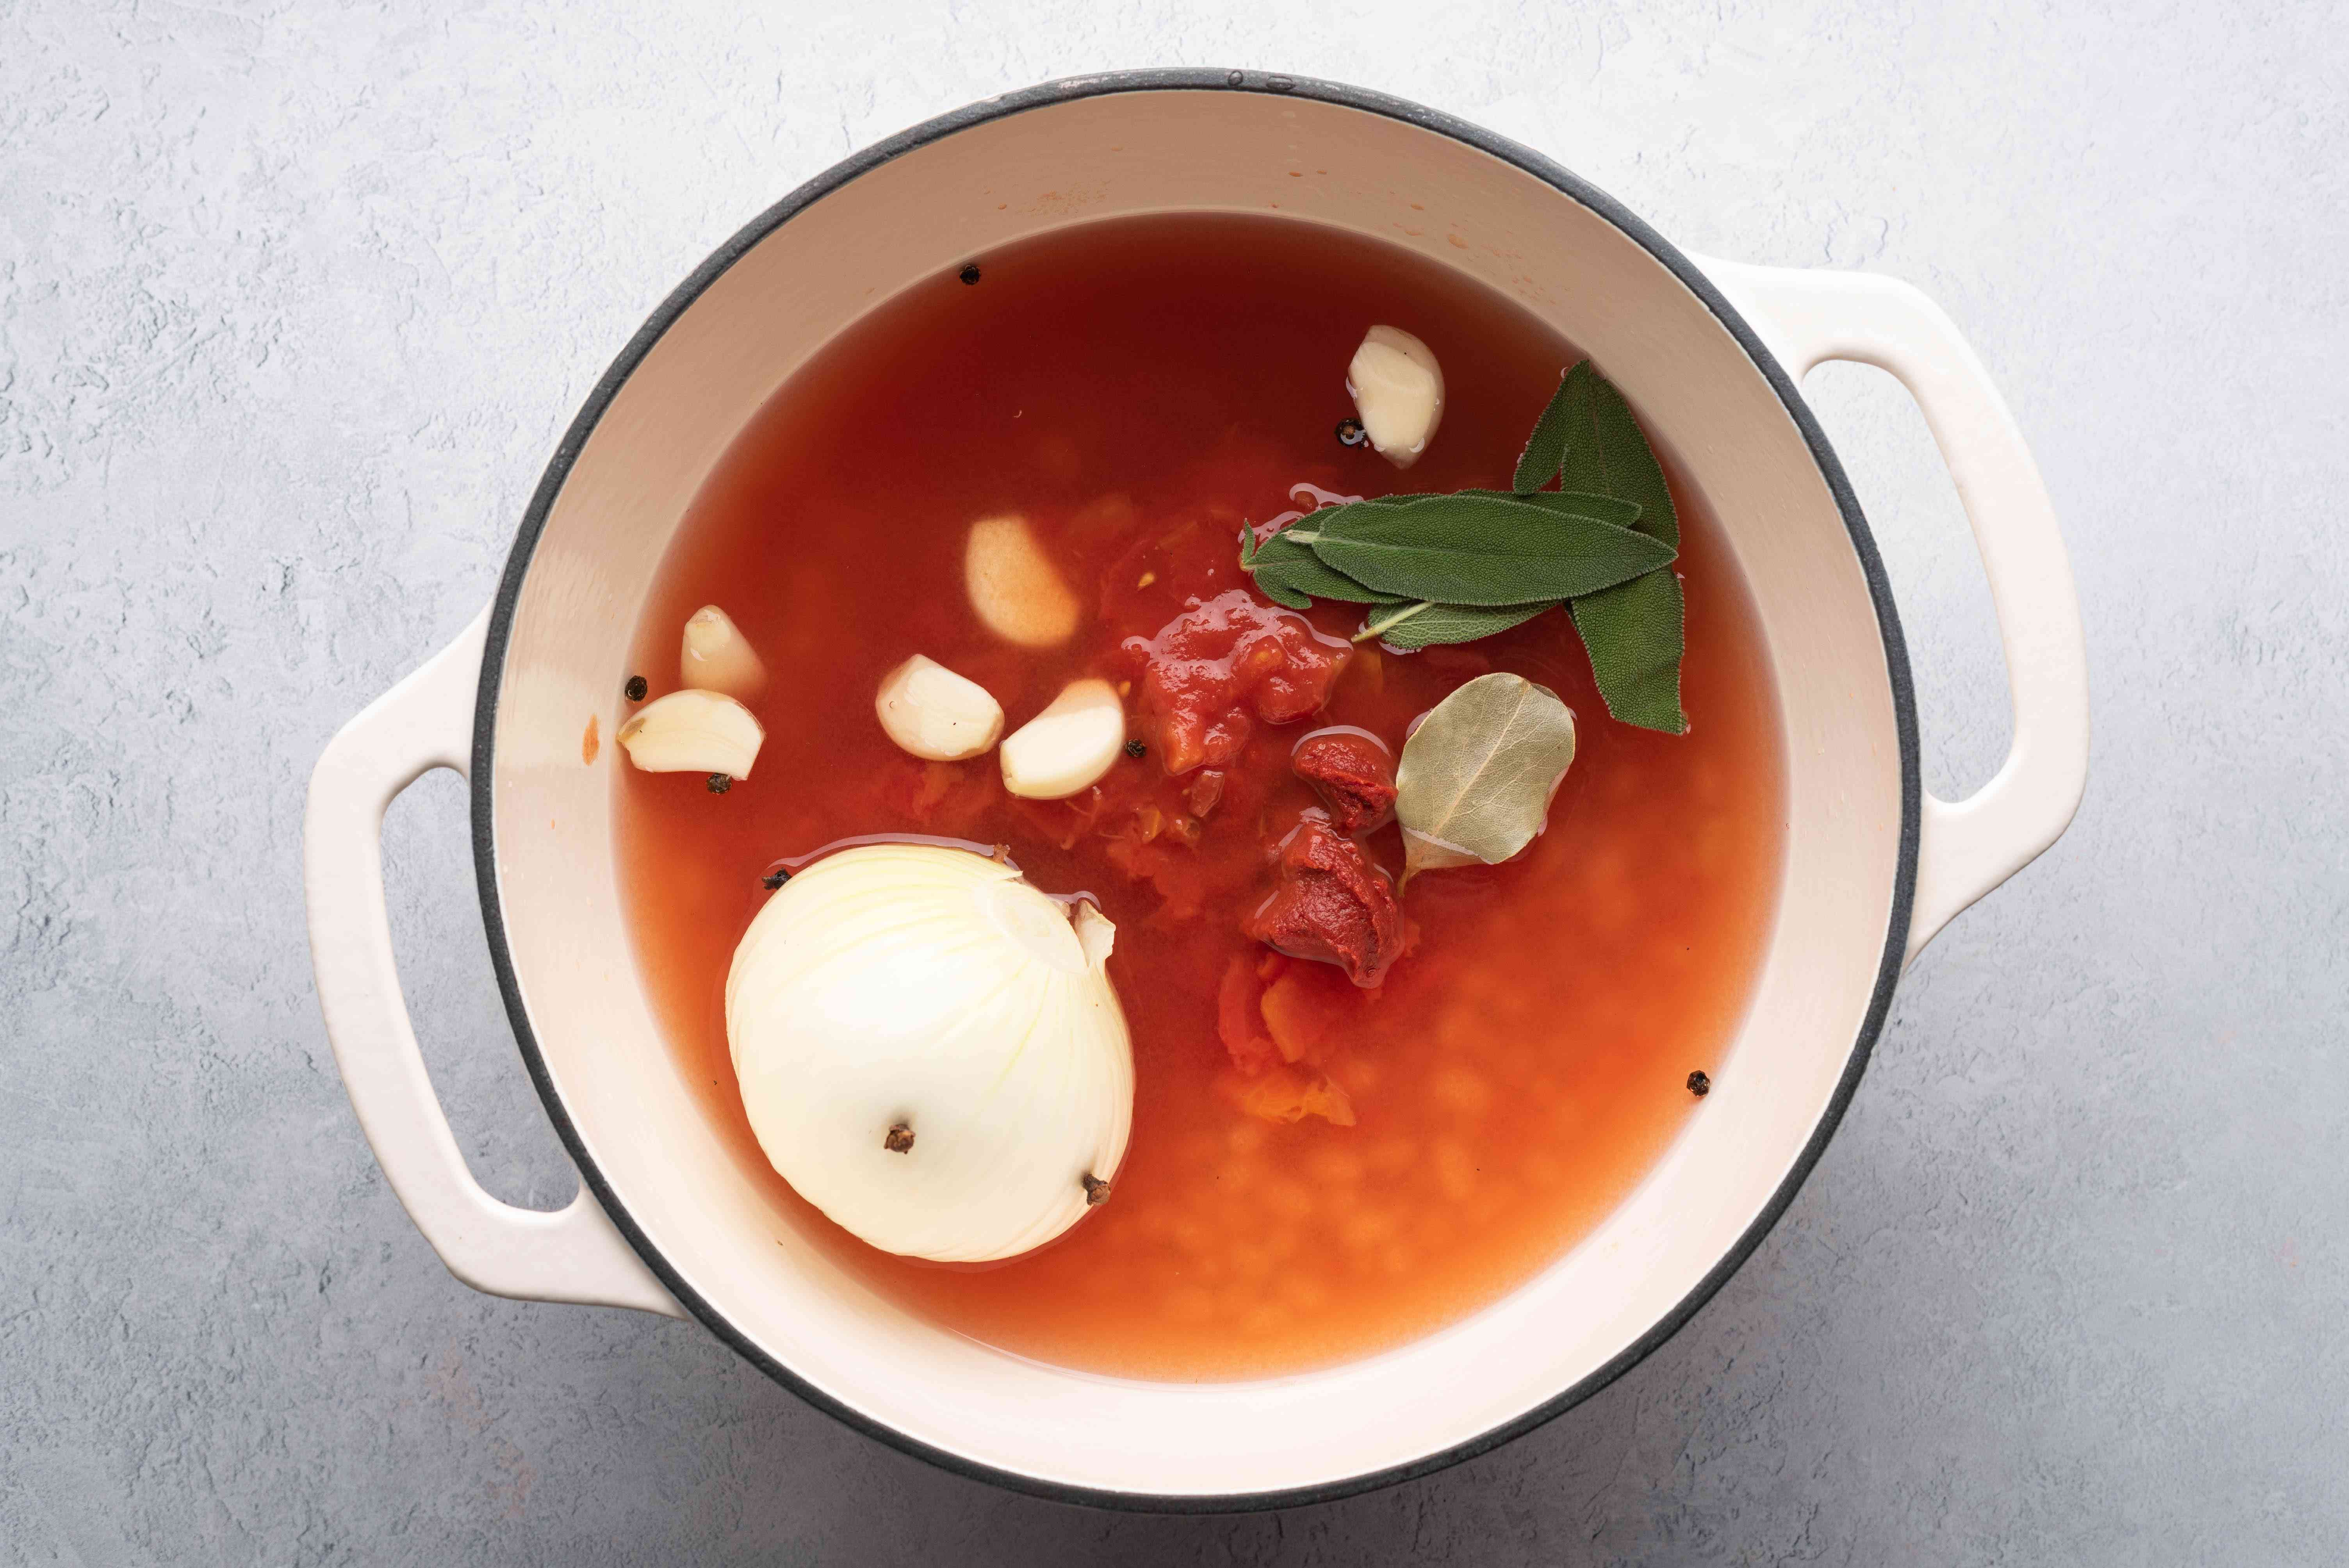 tomato concentrate, black peppercorns, bay leaf, sage, garlic, and canned tomatoes in a pot with the beans